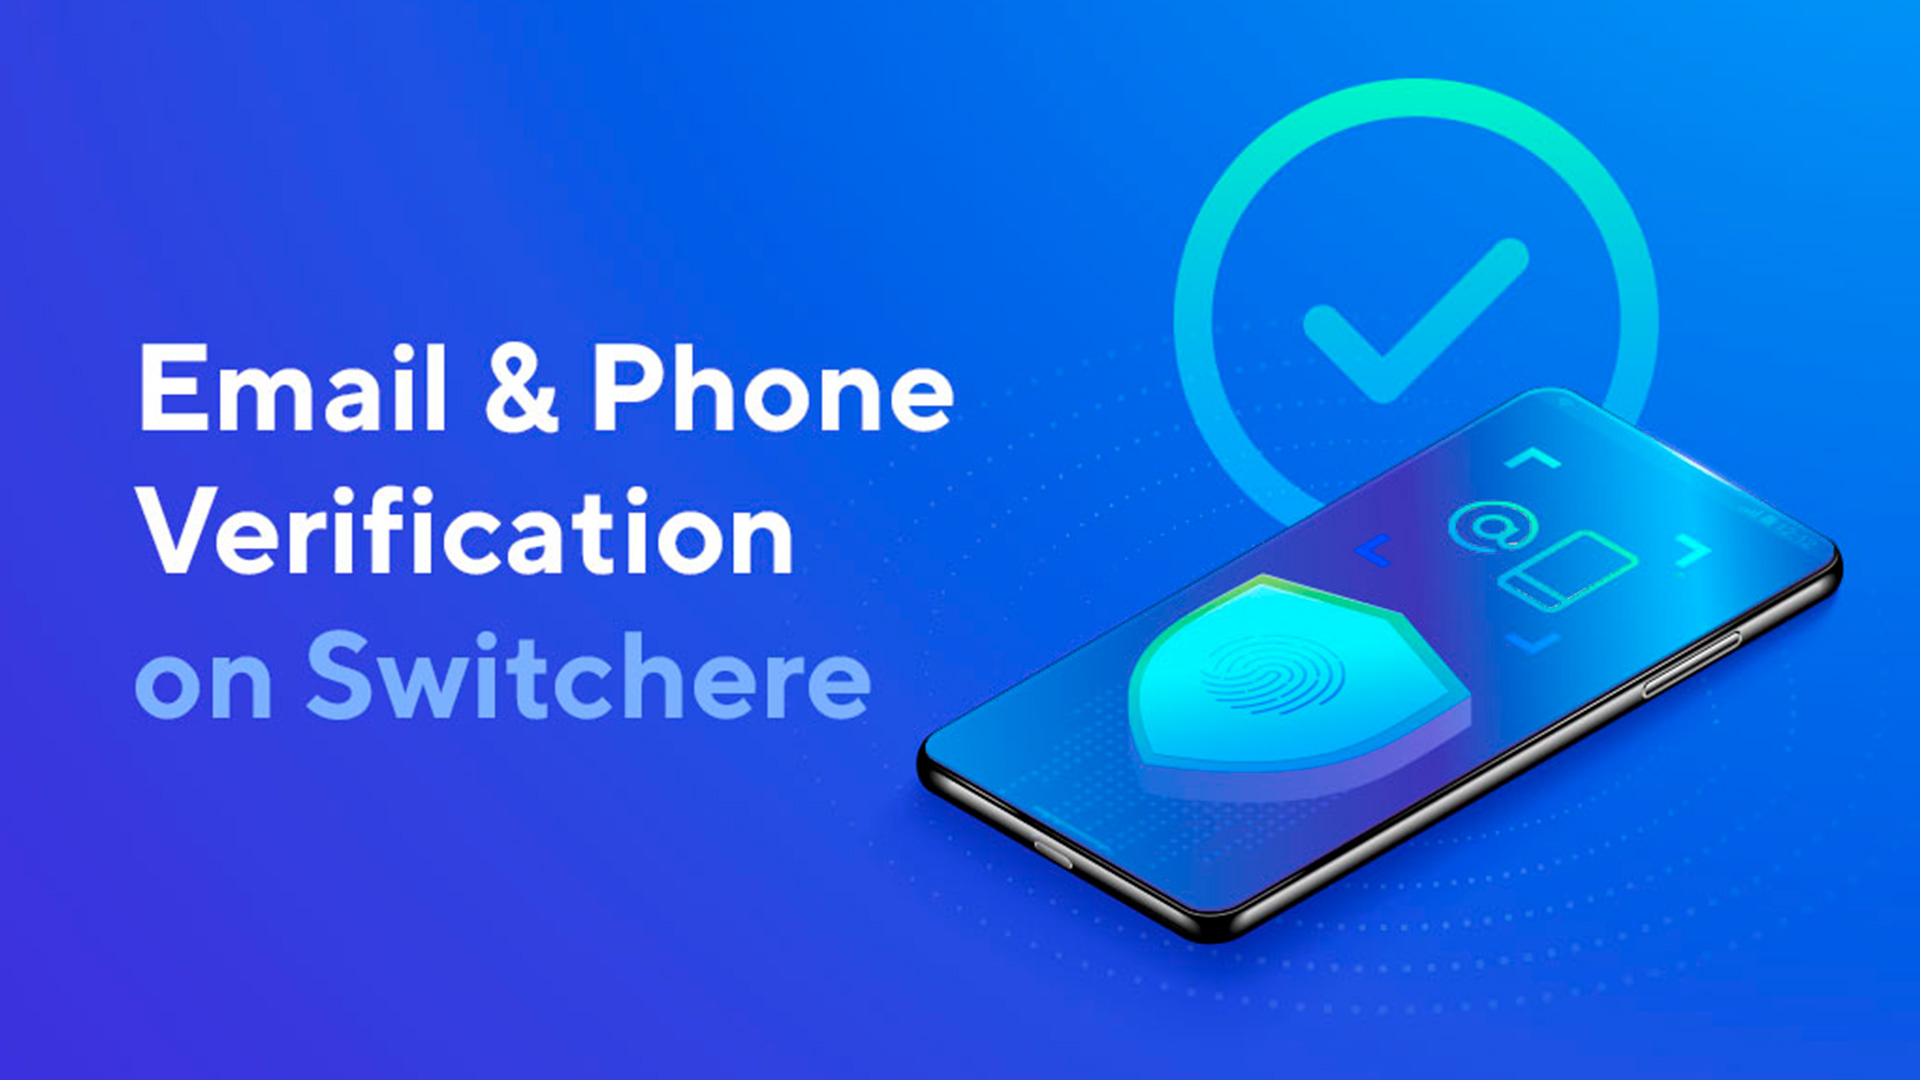 How to Verify Your Email & Phone on Switchere